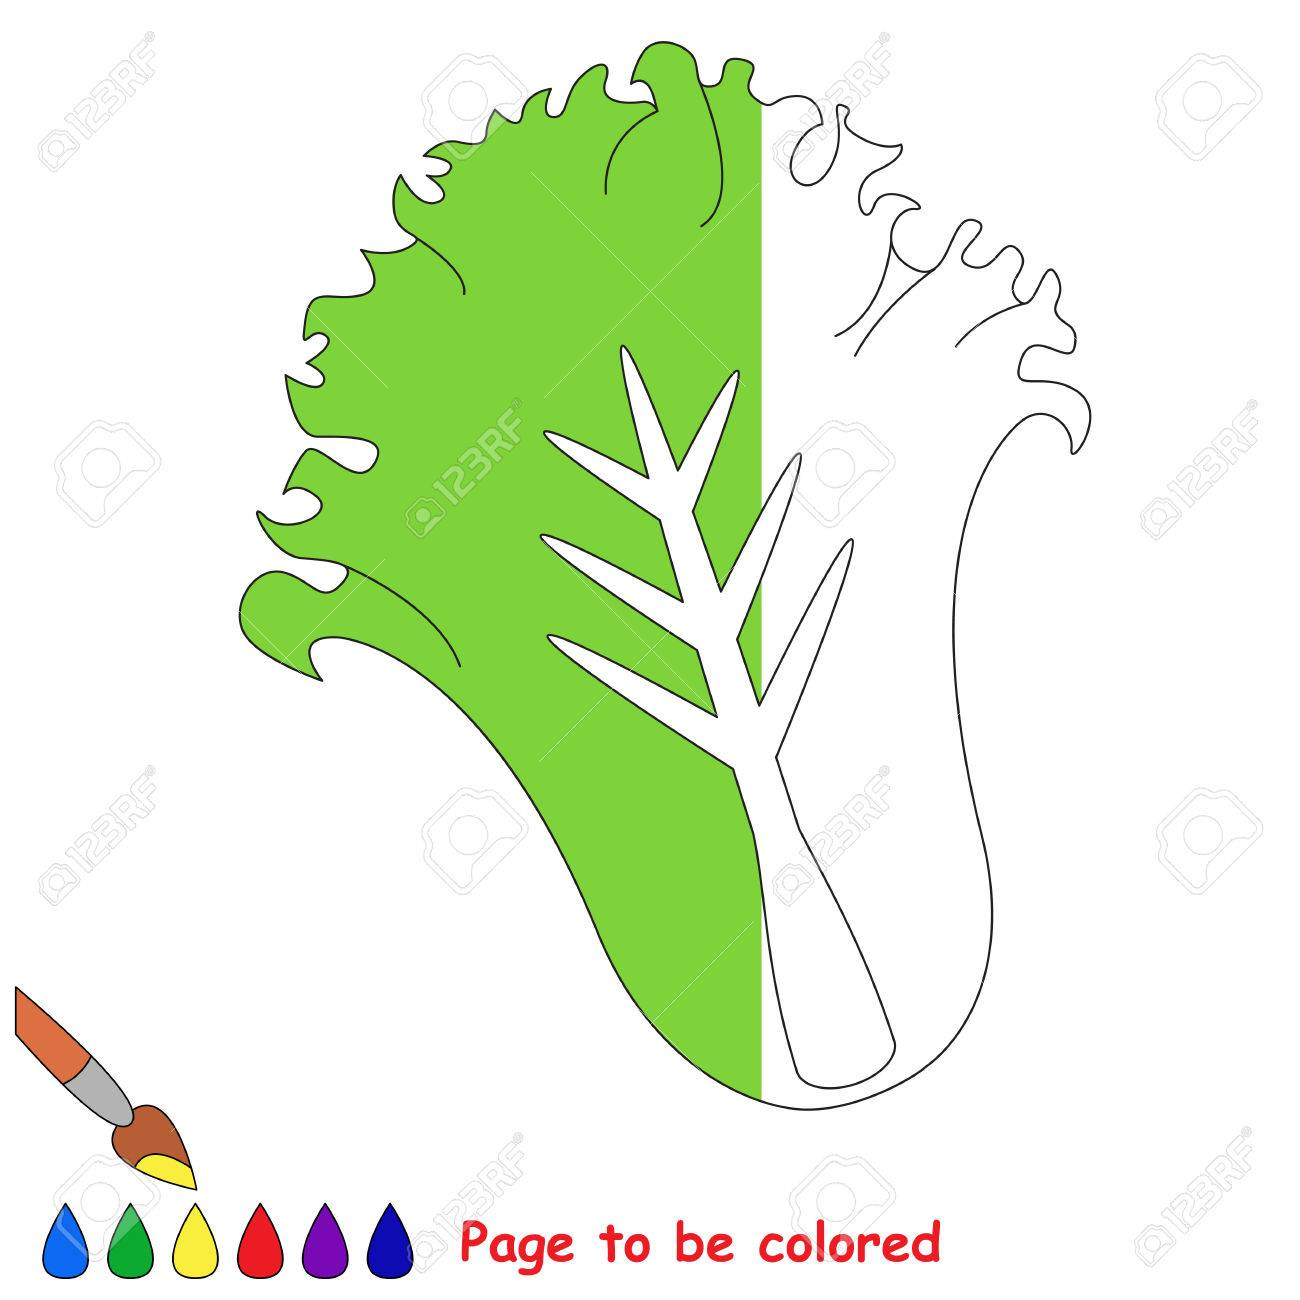 Green Lettuce, The Coloring Book To Educate Preschool Kids With ...